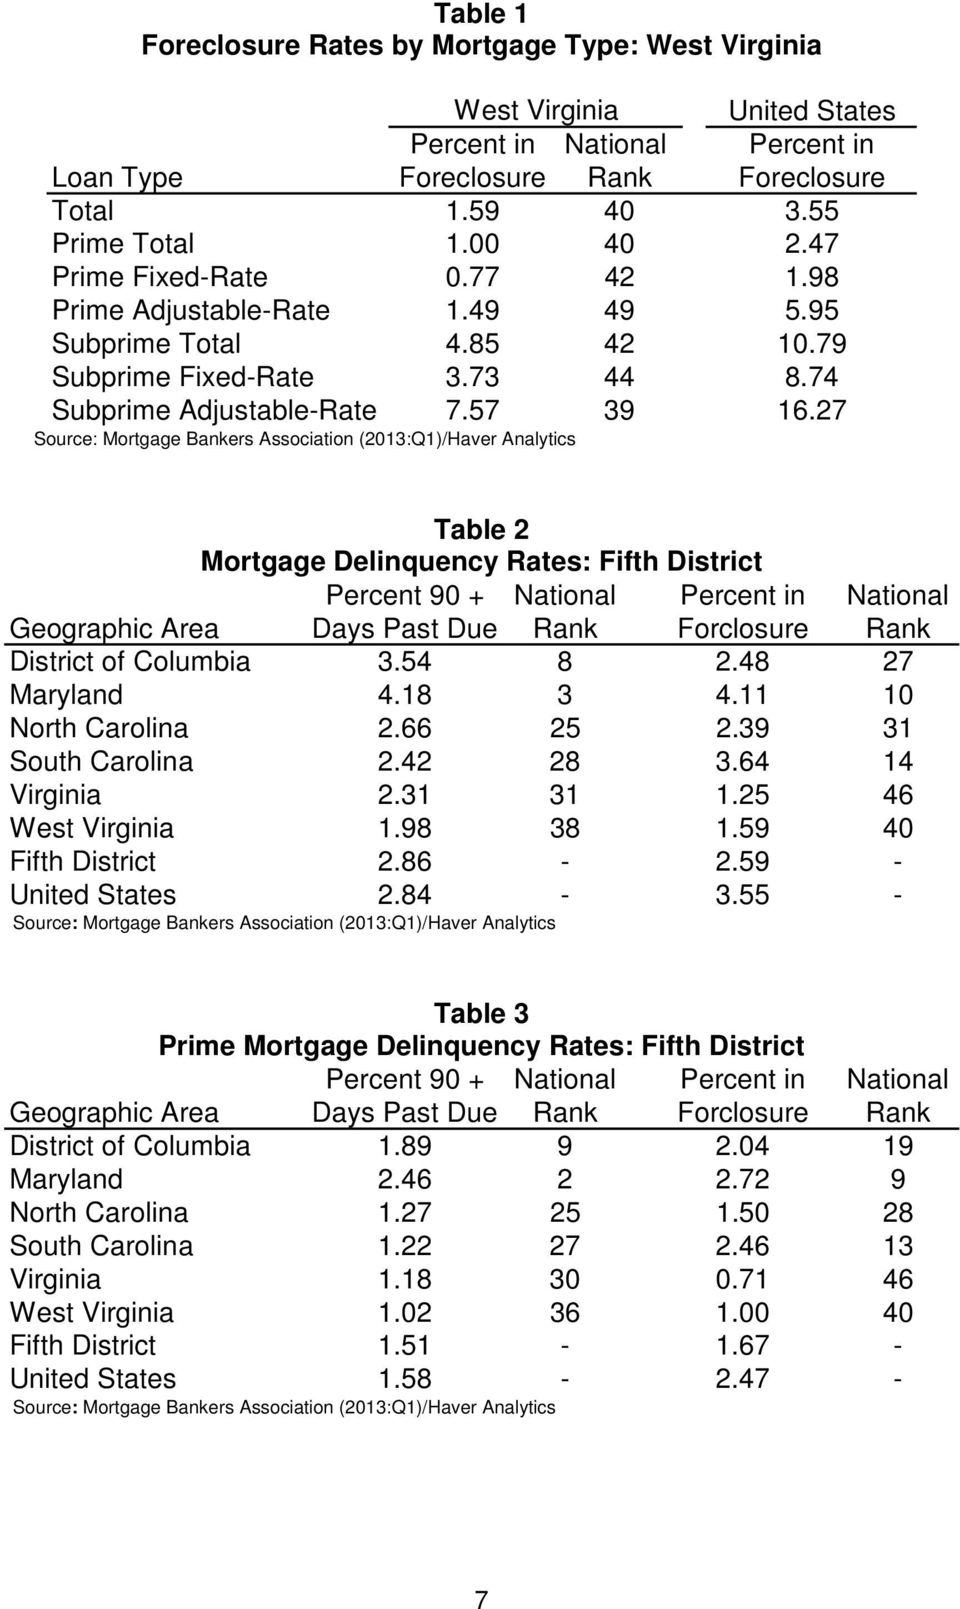 27 Source: Mortgage Bankers Association (2013:Q1)/Haver Analytics Table 2 Mortgage Delinquency Rates: Fifth District 90 + National in National Days Past Due Rank Forclosure Rank District of Columbia